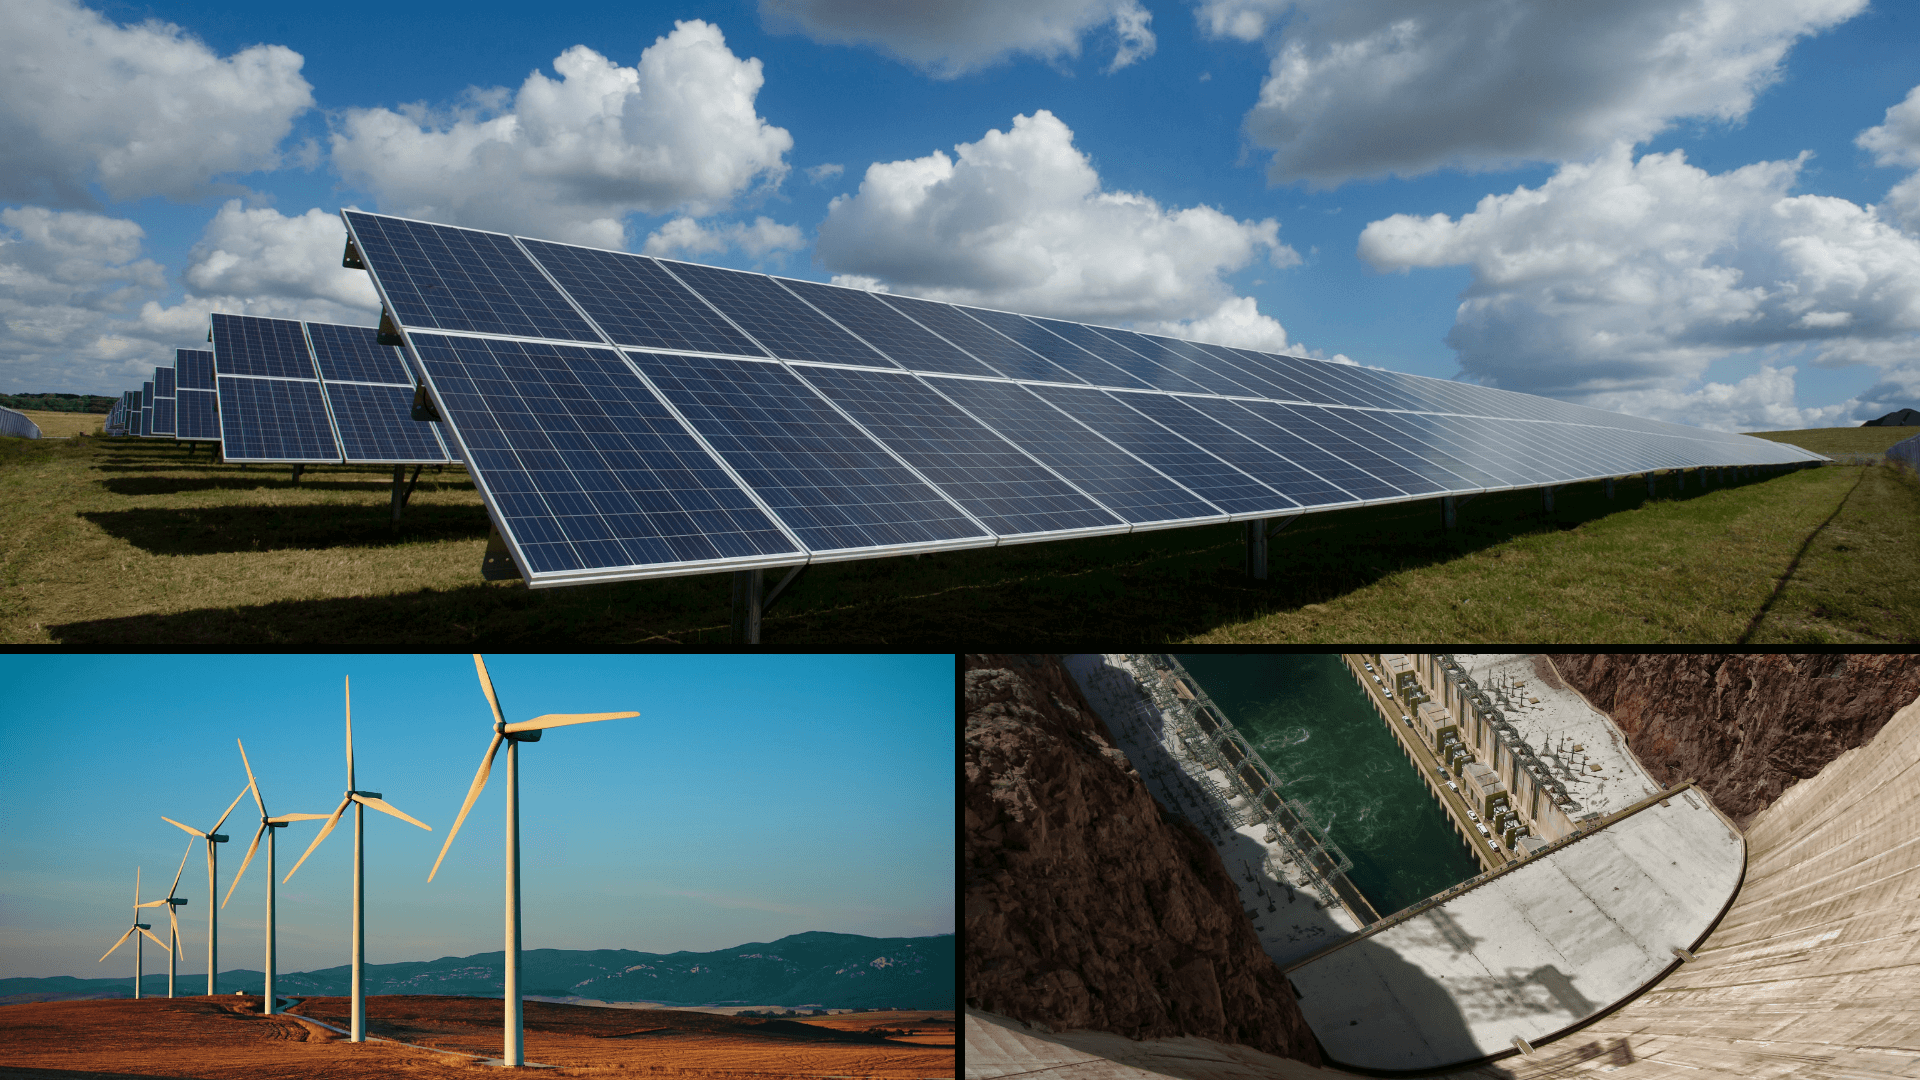 Runner and pacer in the marathon towards African energy transition